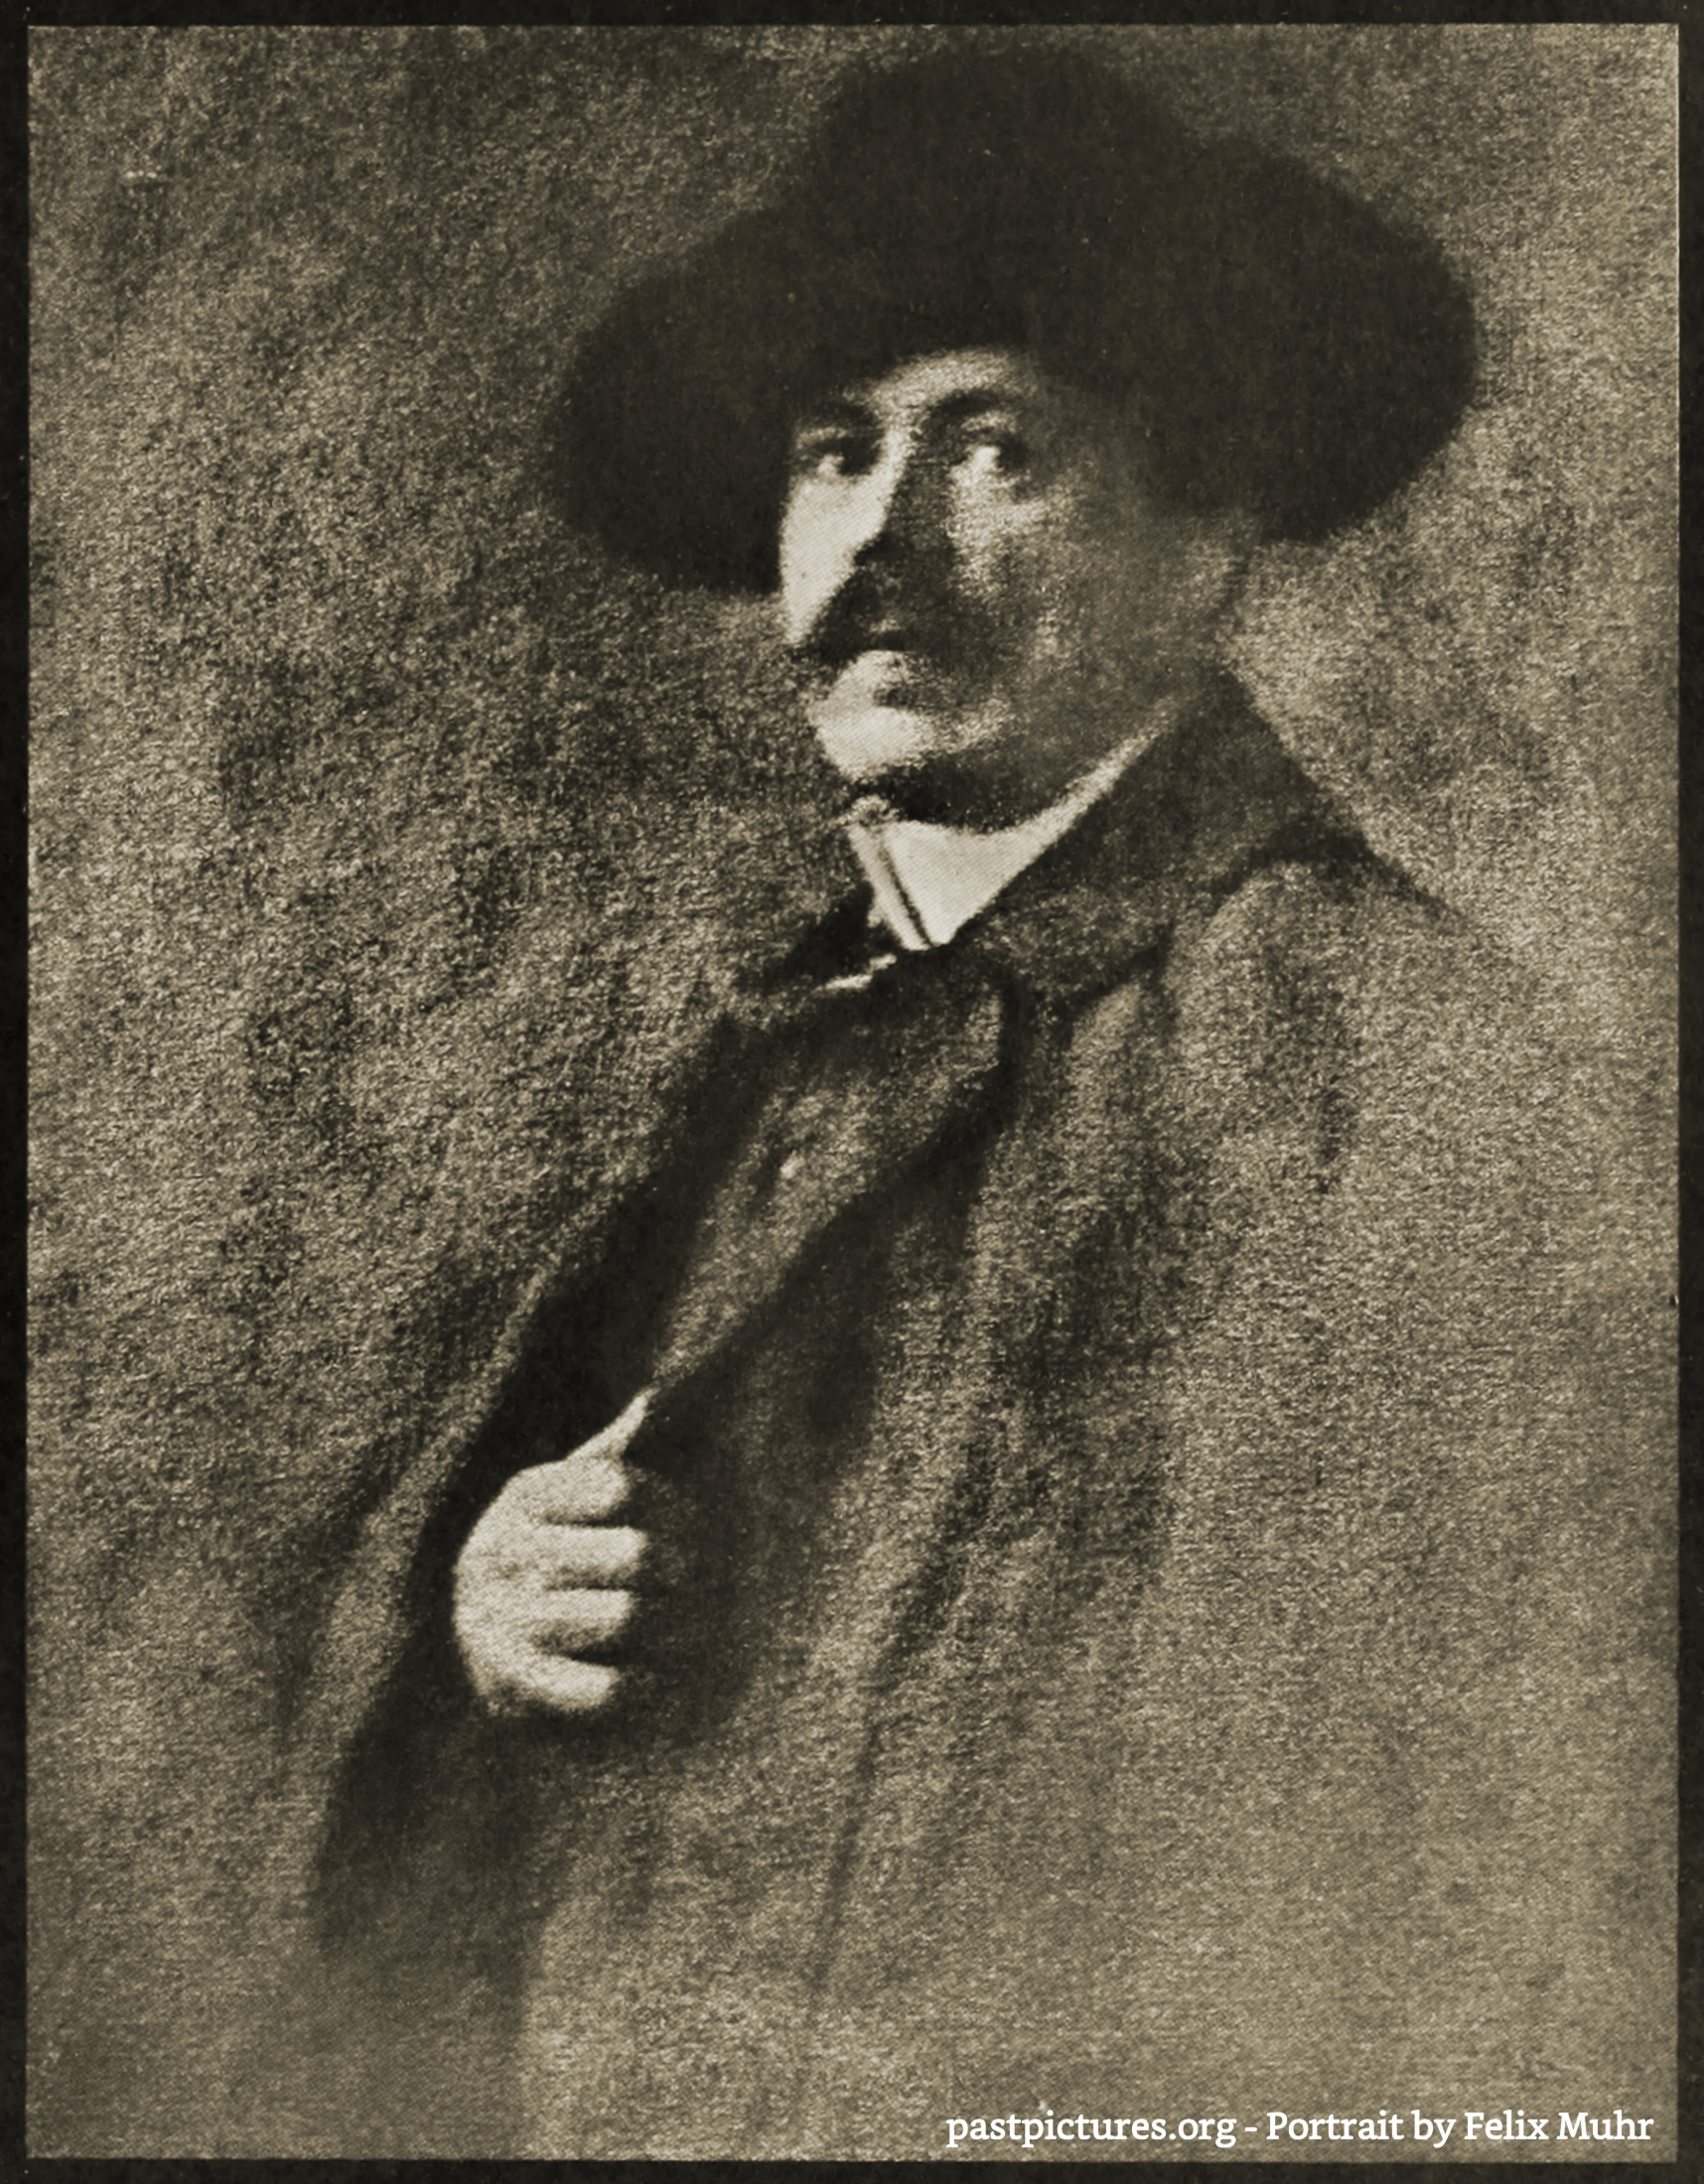 Portrait by Felix Muhr about 1908